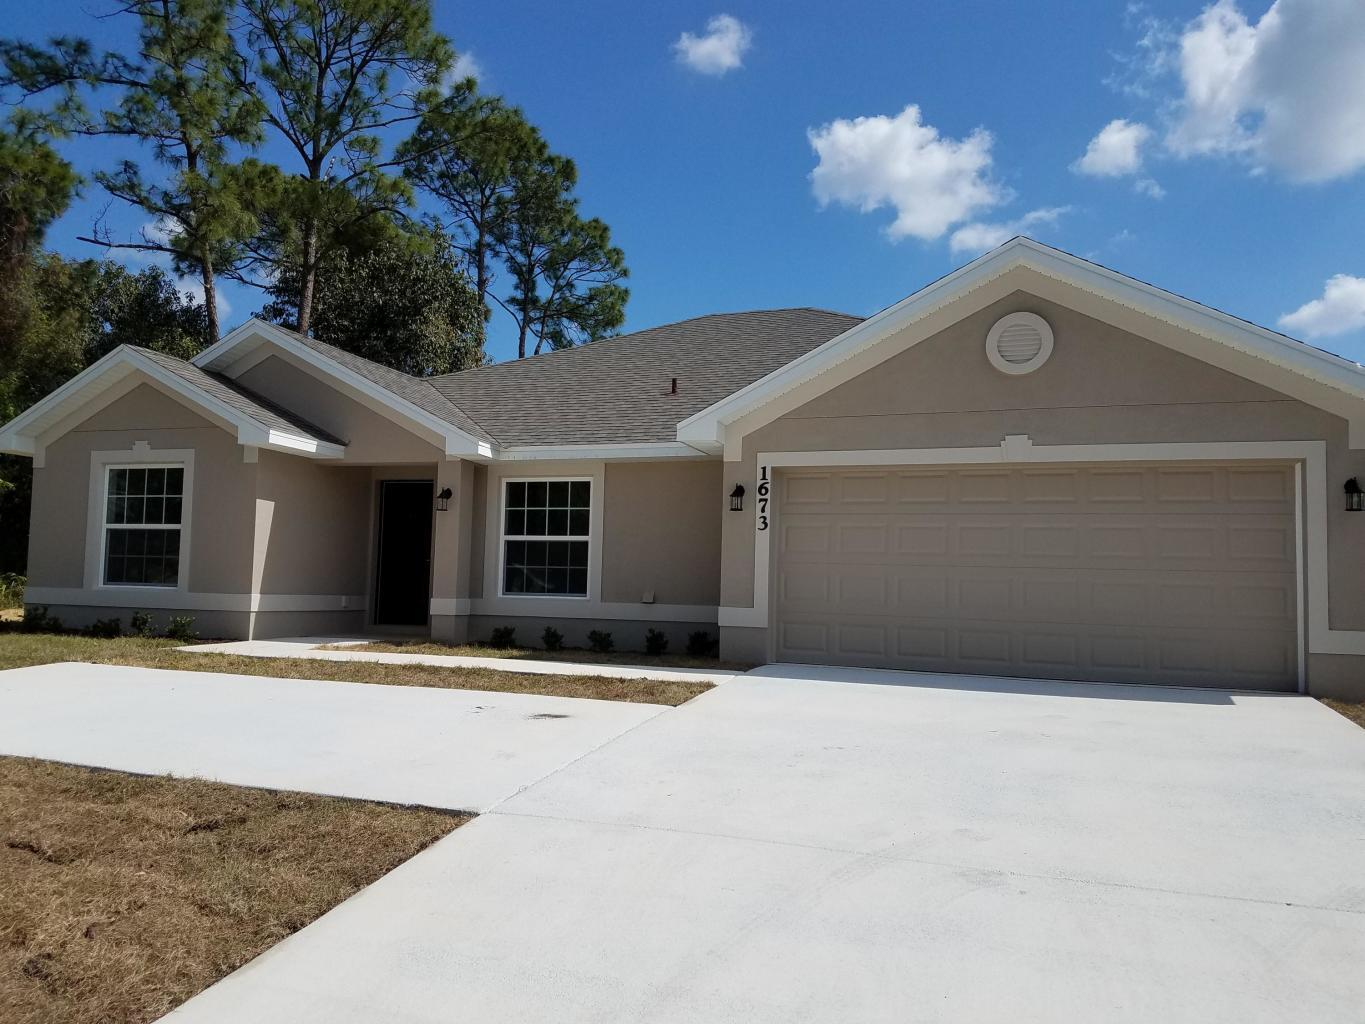 6129 NW Ginger Lane 34986 - One of Port Saint Lucie Homes for Sale